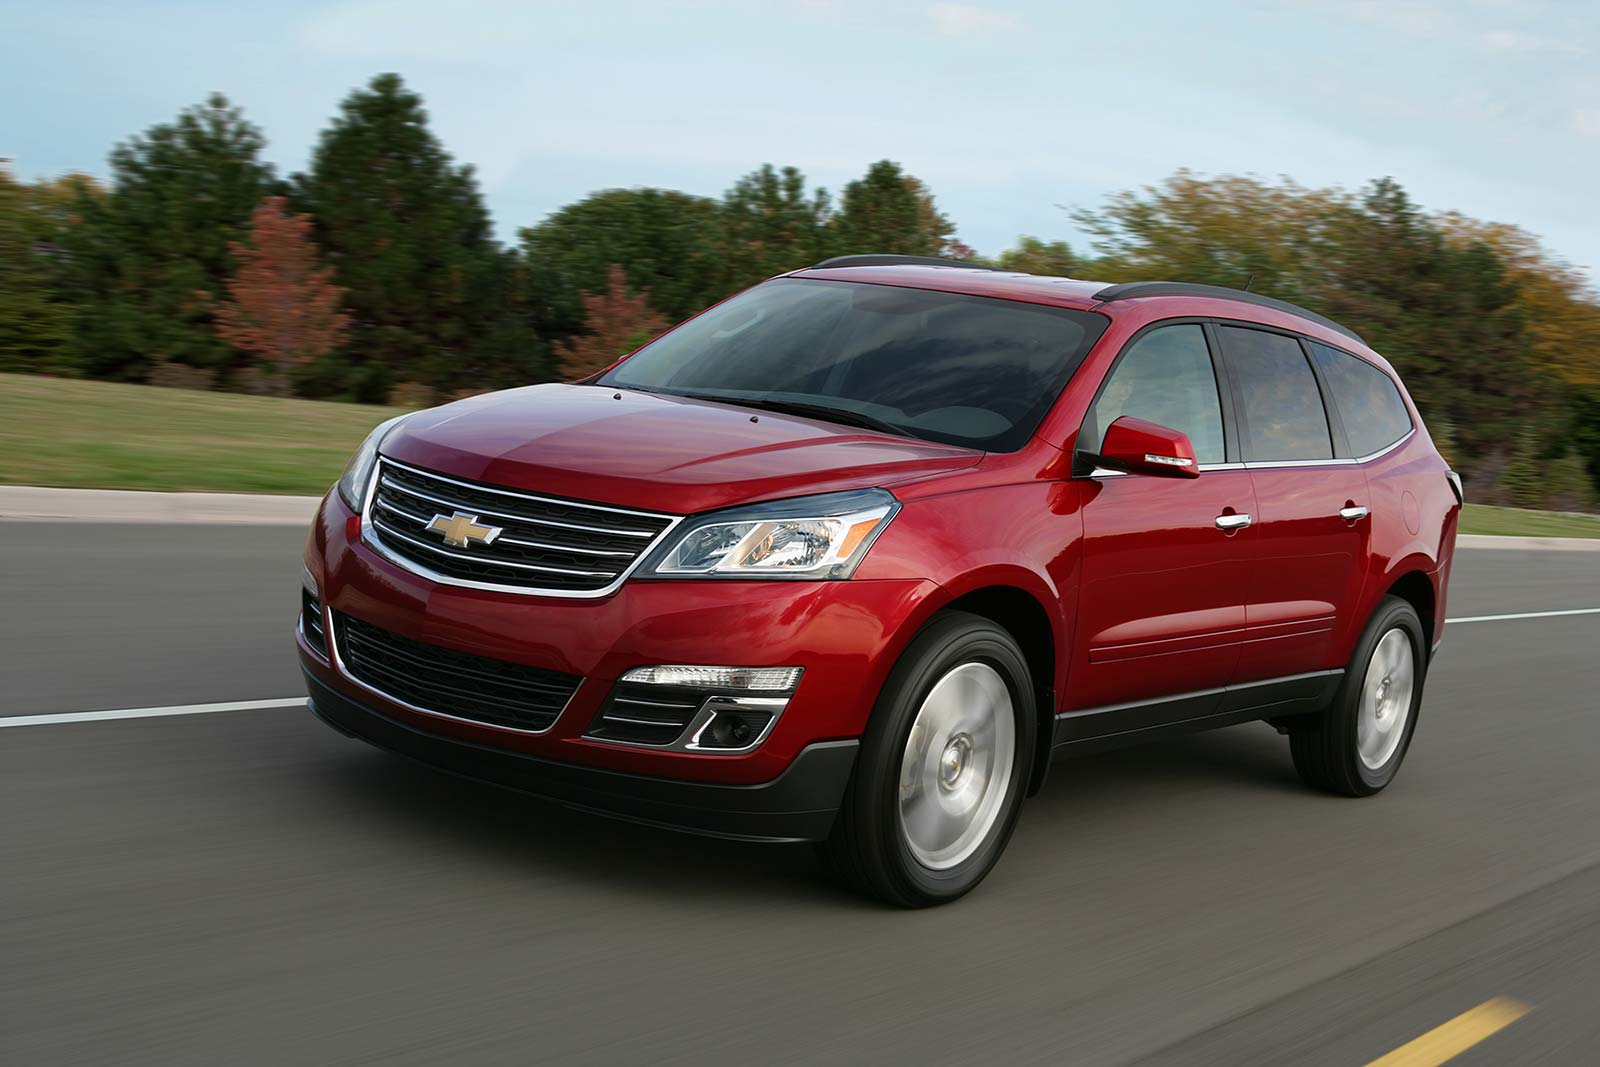 Dtc Codes Related To Chevy Traverse Transmission Problems